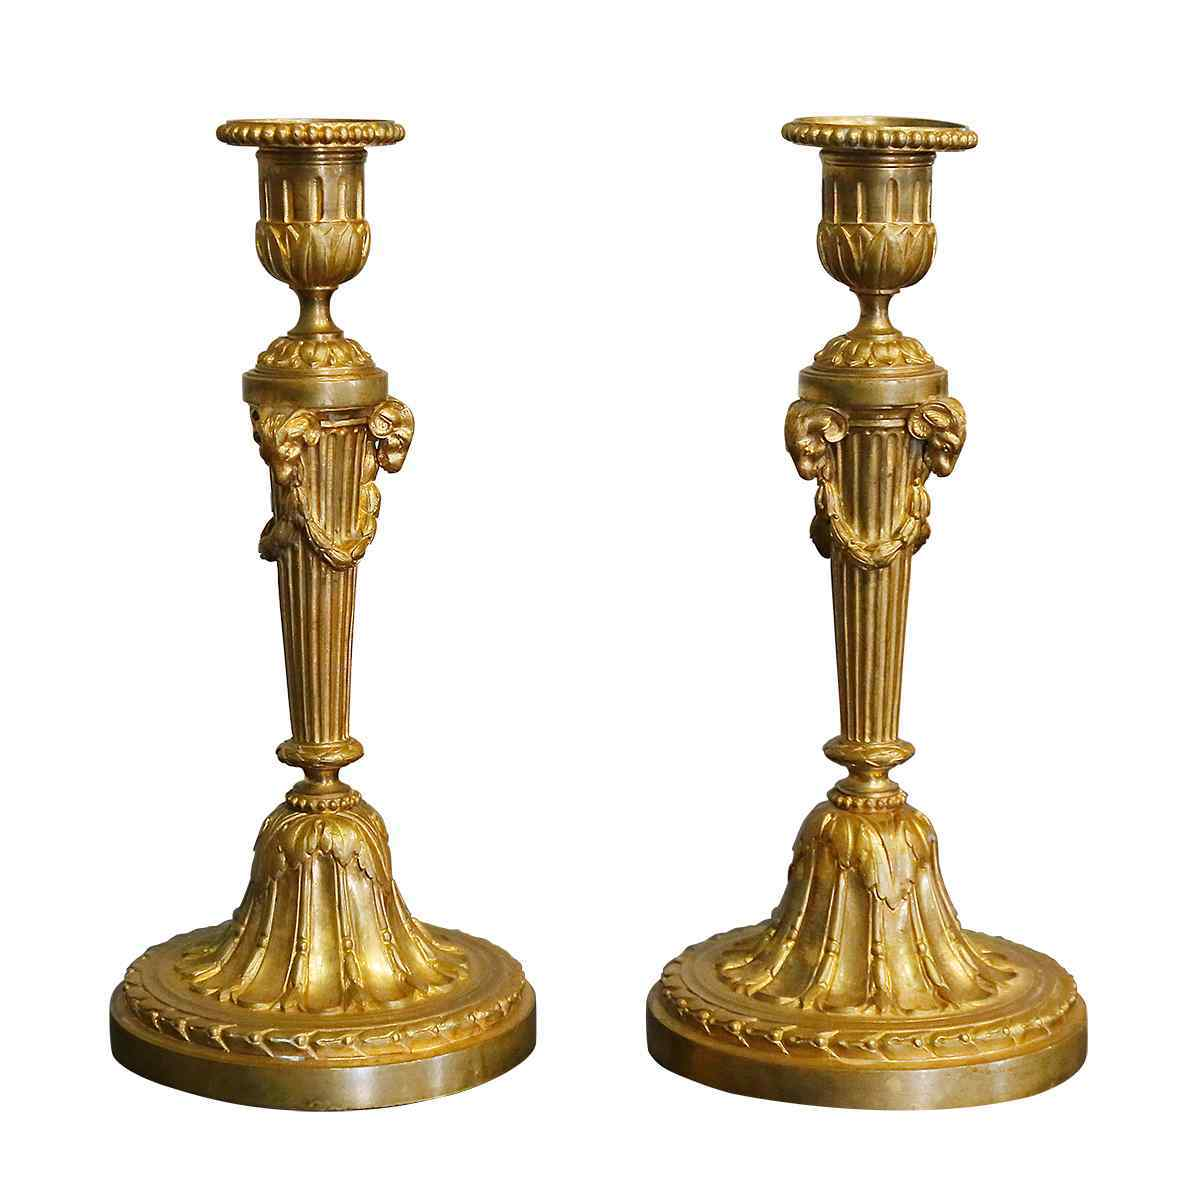 A Pair of Candlesticks 19th century